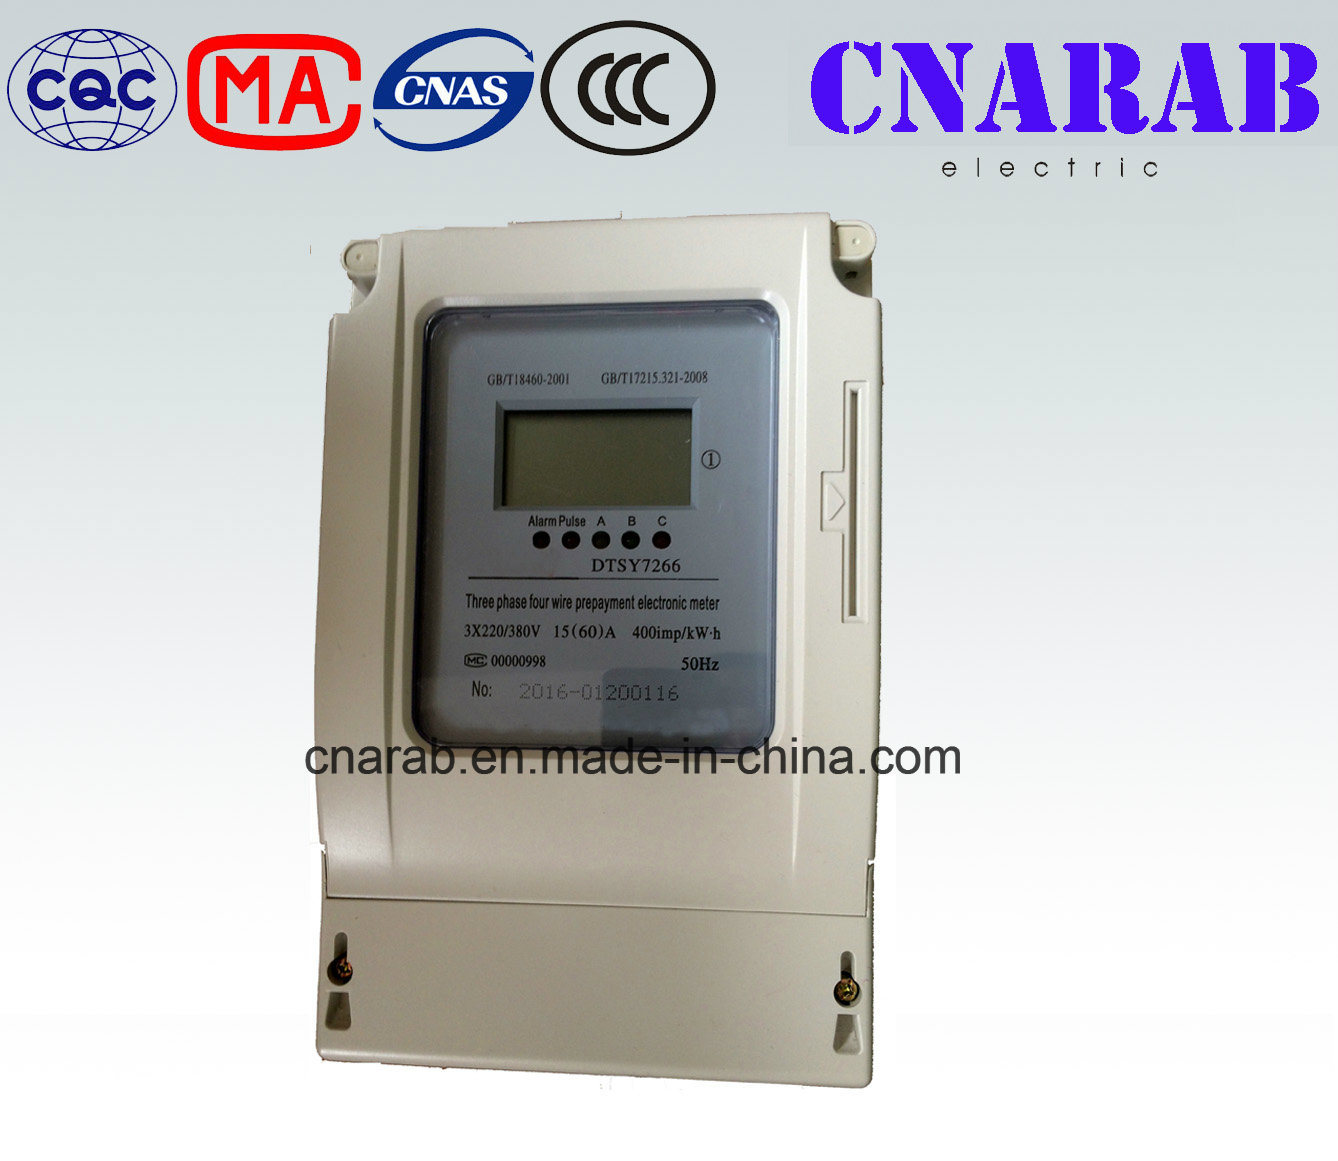 Three Phase Four Wire Electronic Prepaid Watt-Hour Meter (LCD display)